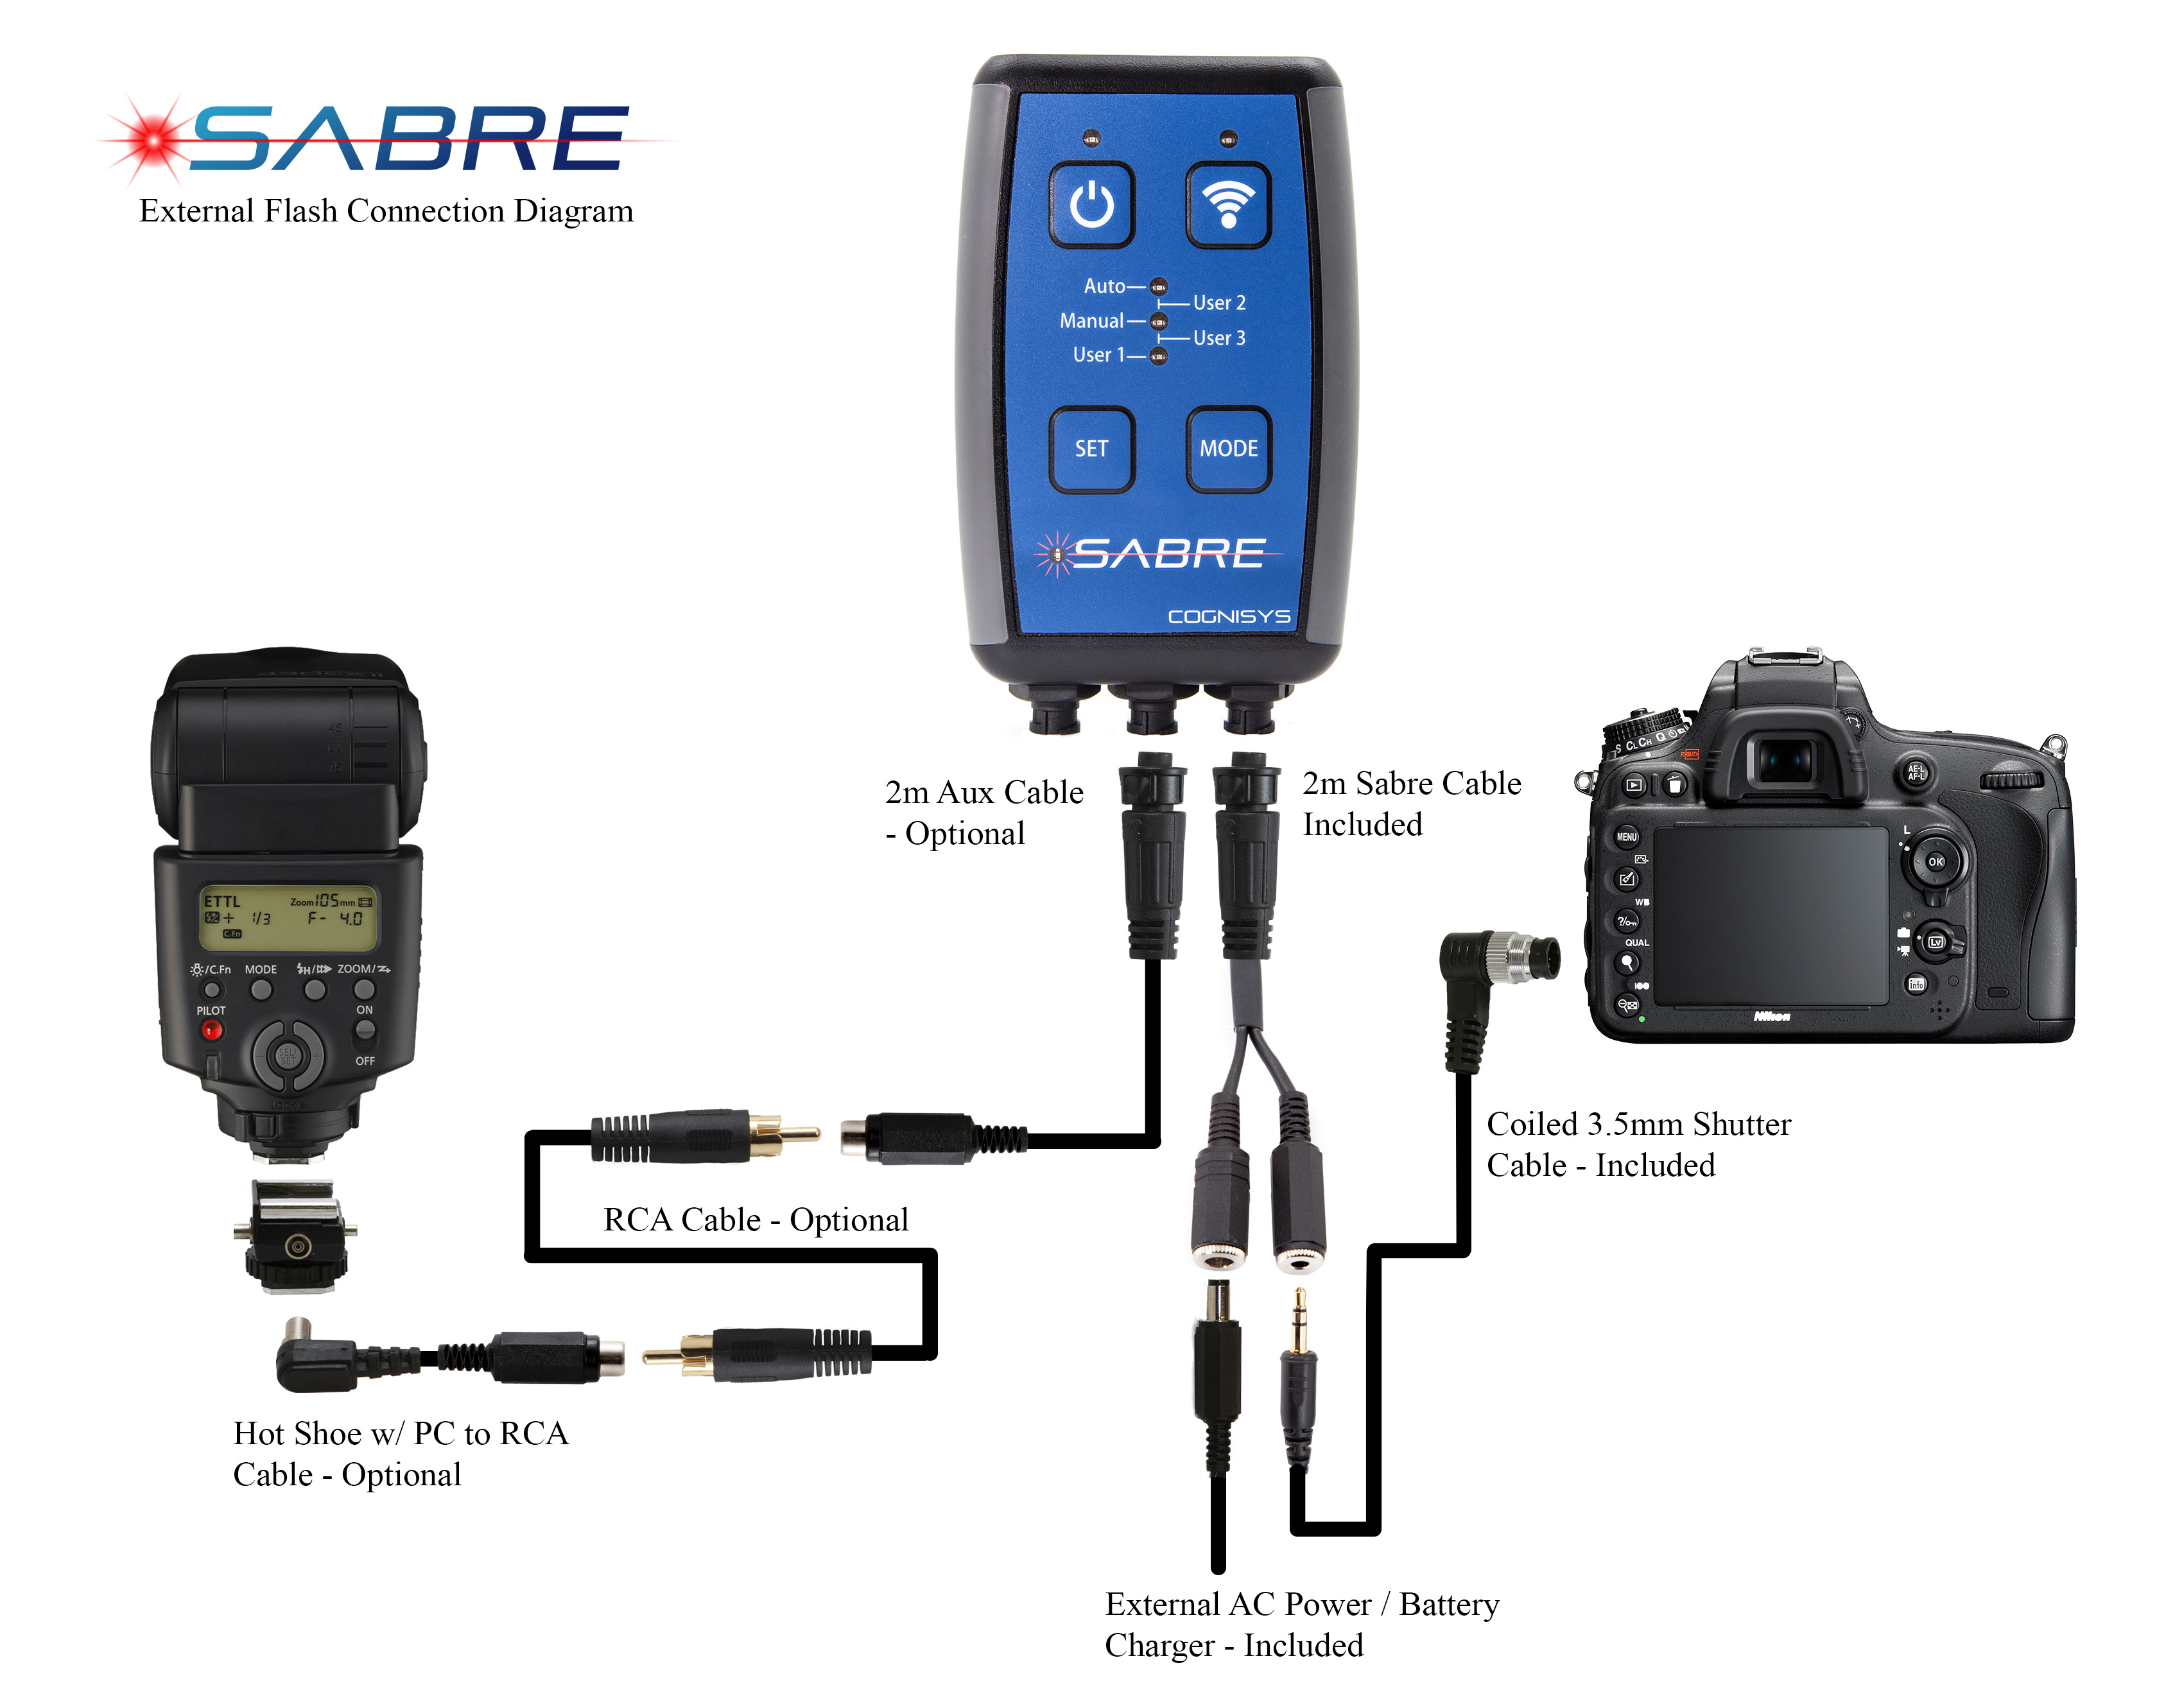 Connecting Sabre to Your Camera